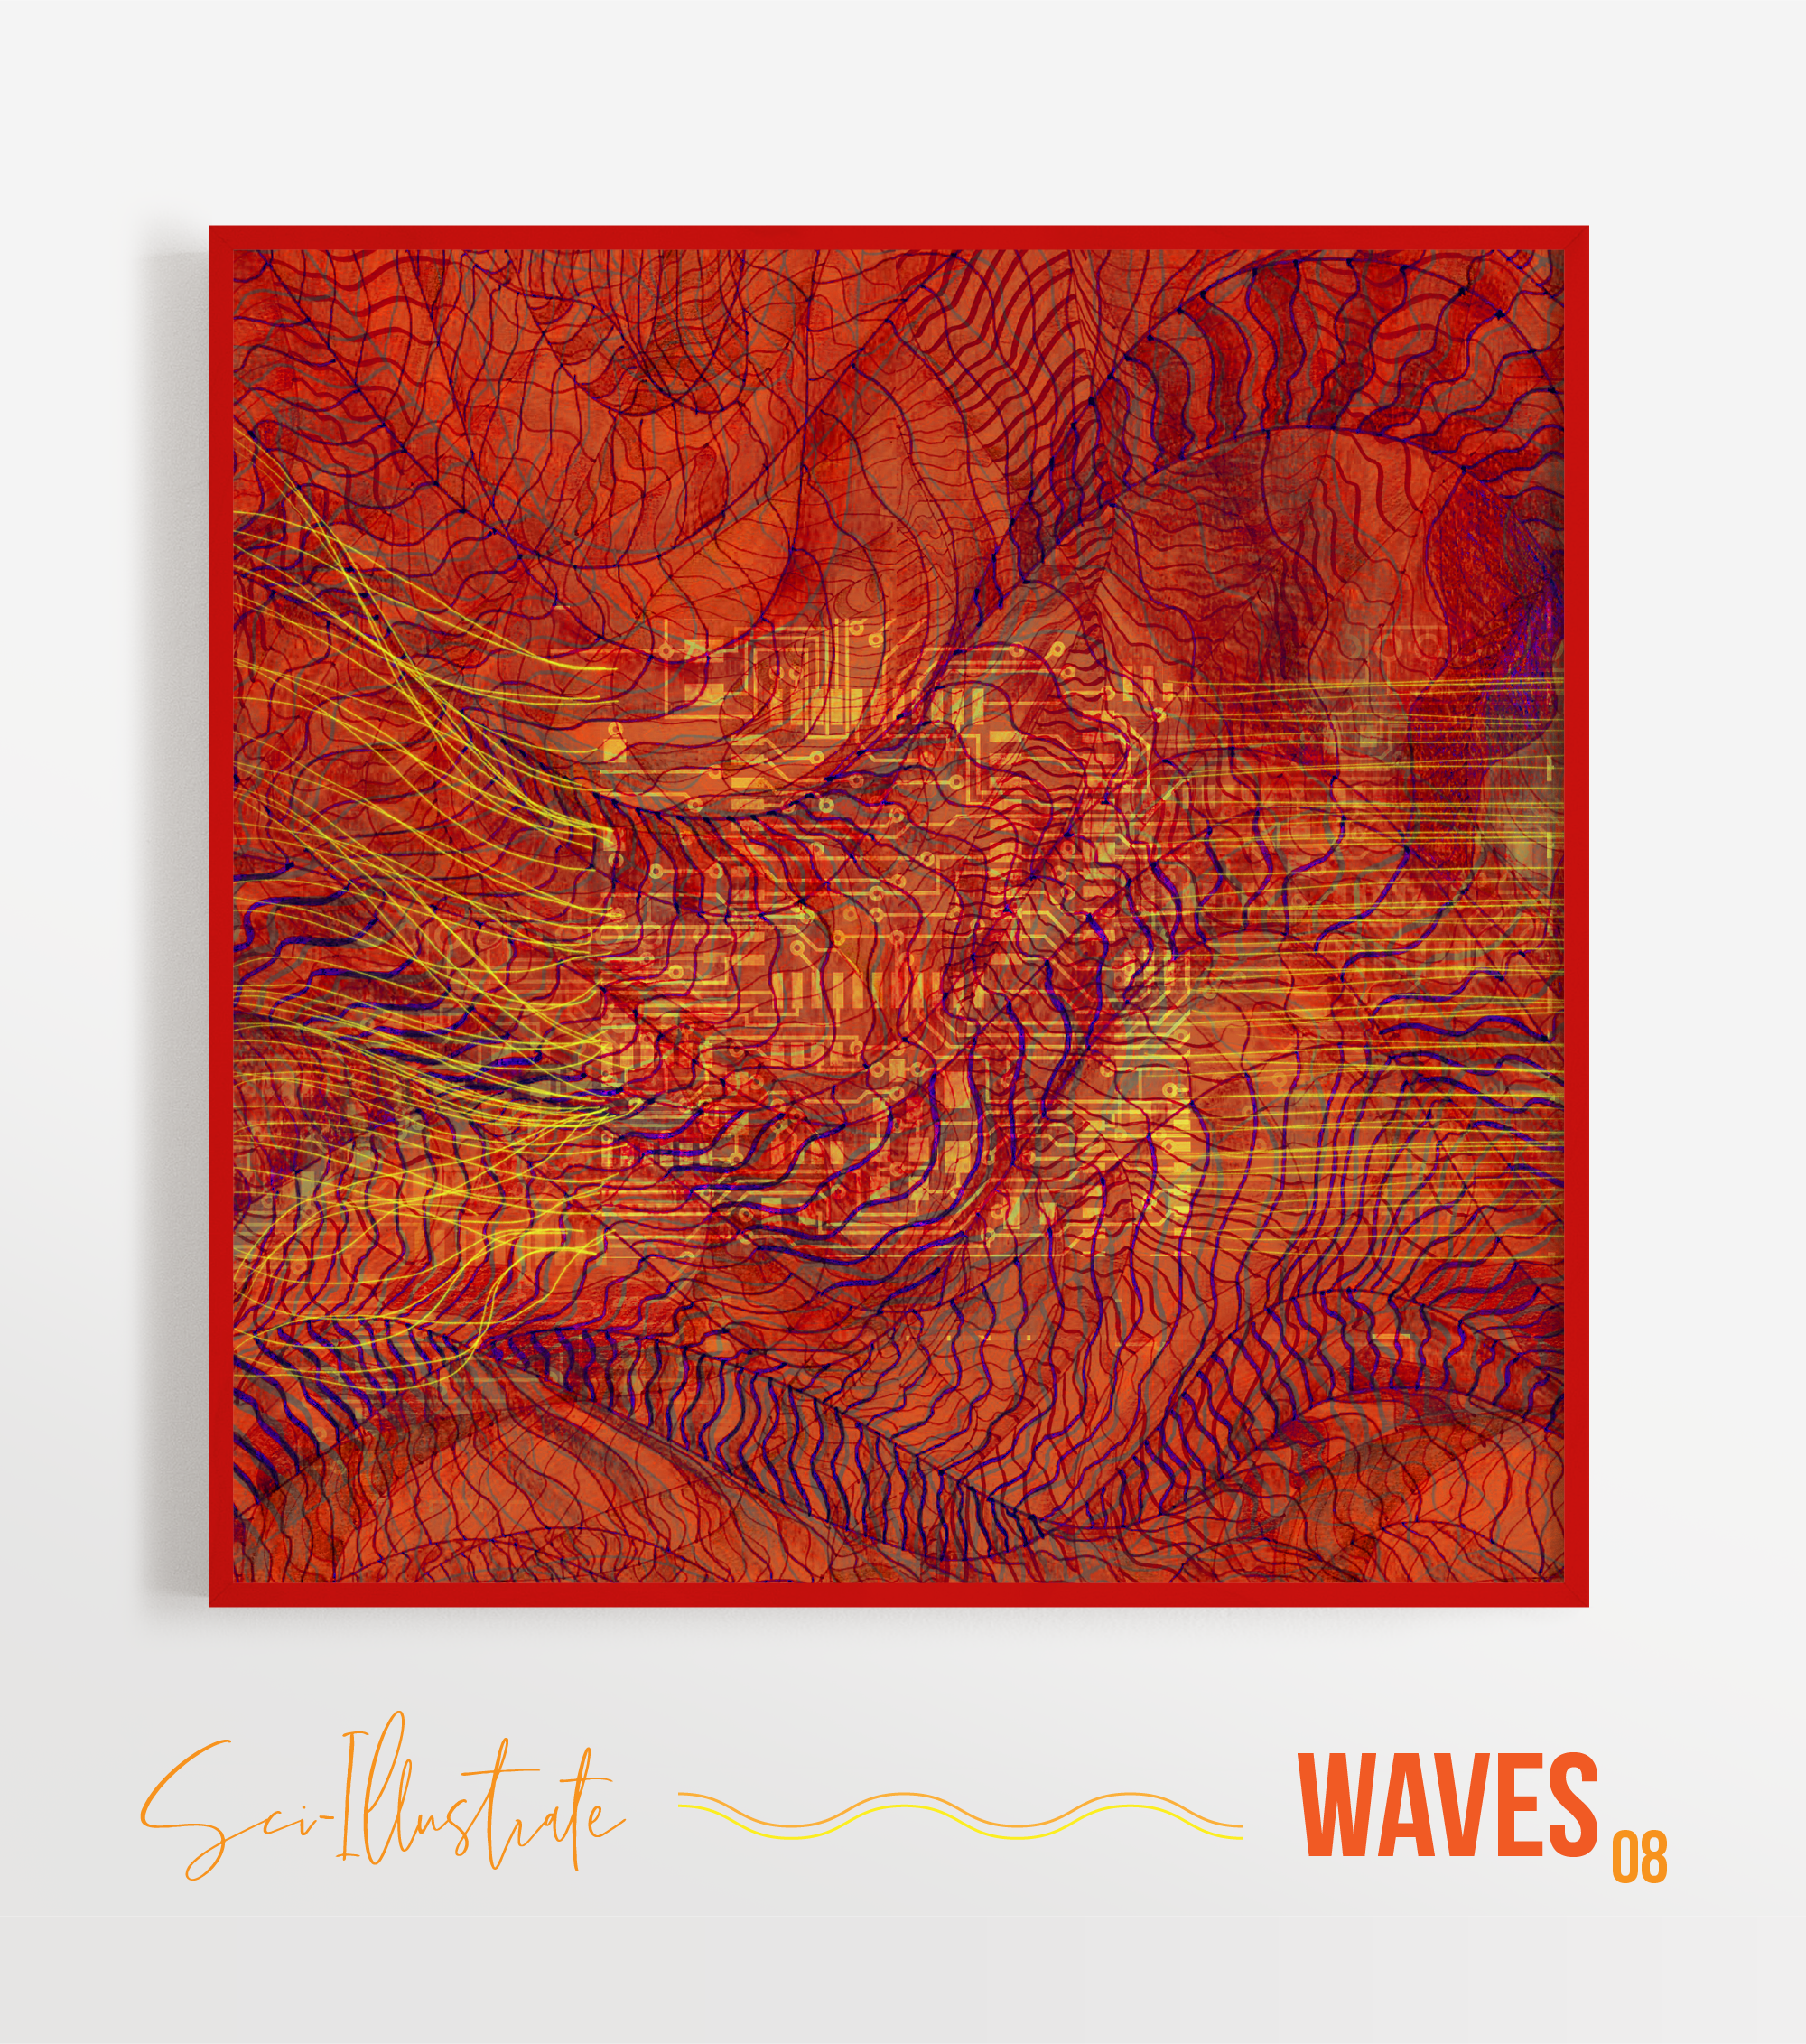 waves -SM 05 02-02.png